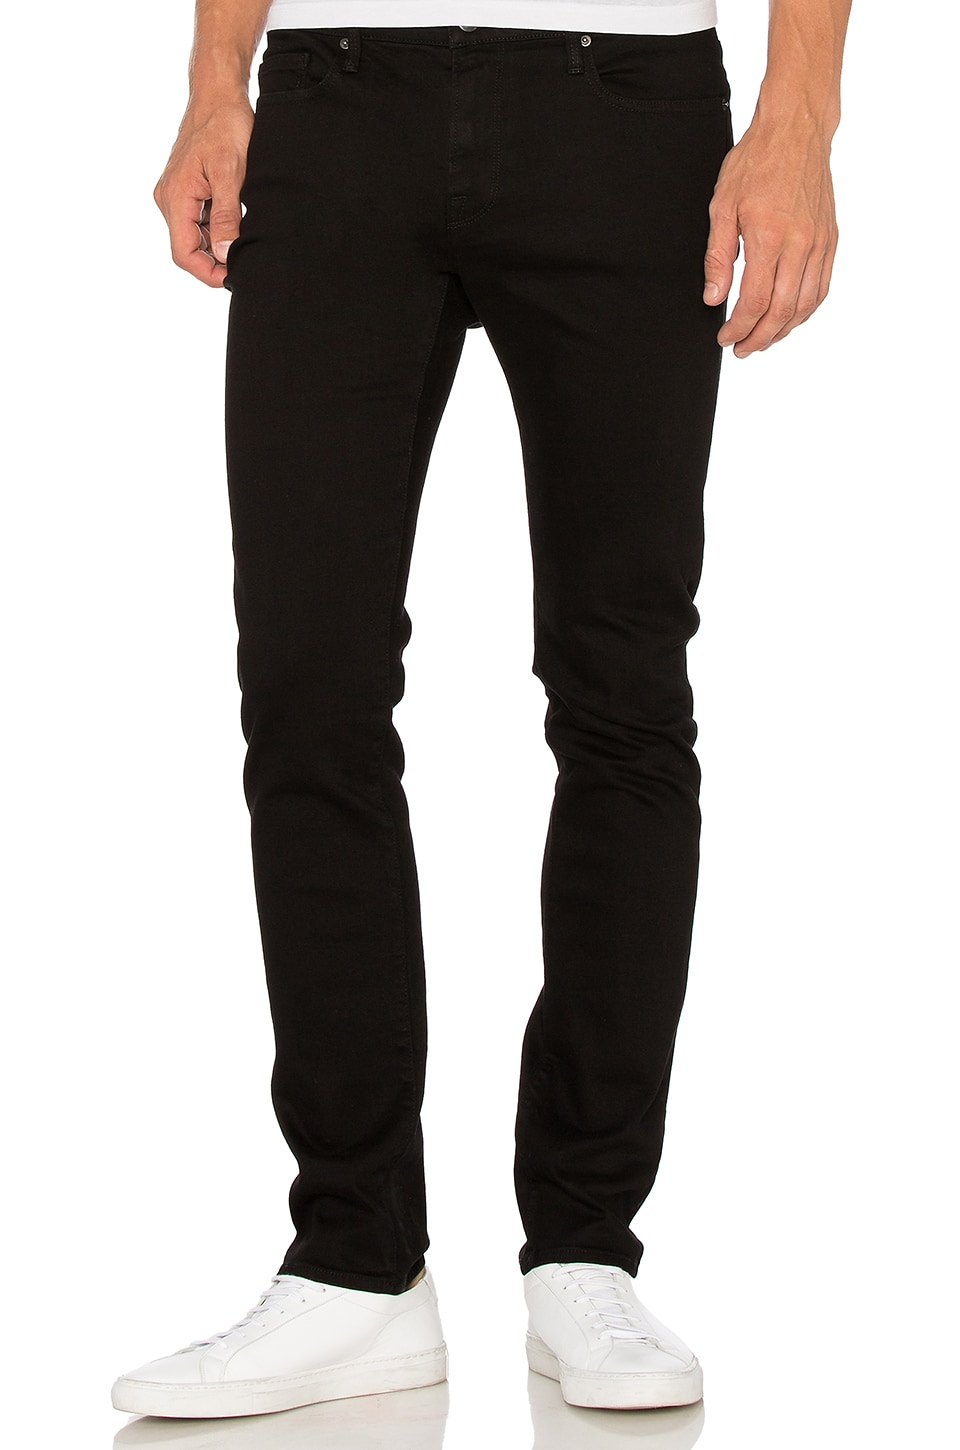 L'Homme Skinny by FRAME Denim